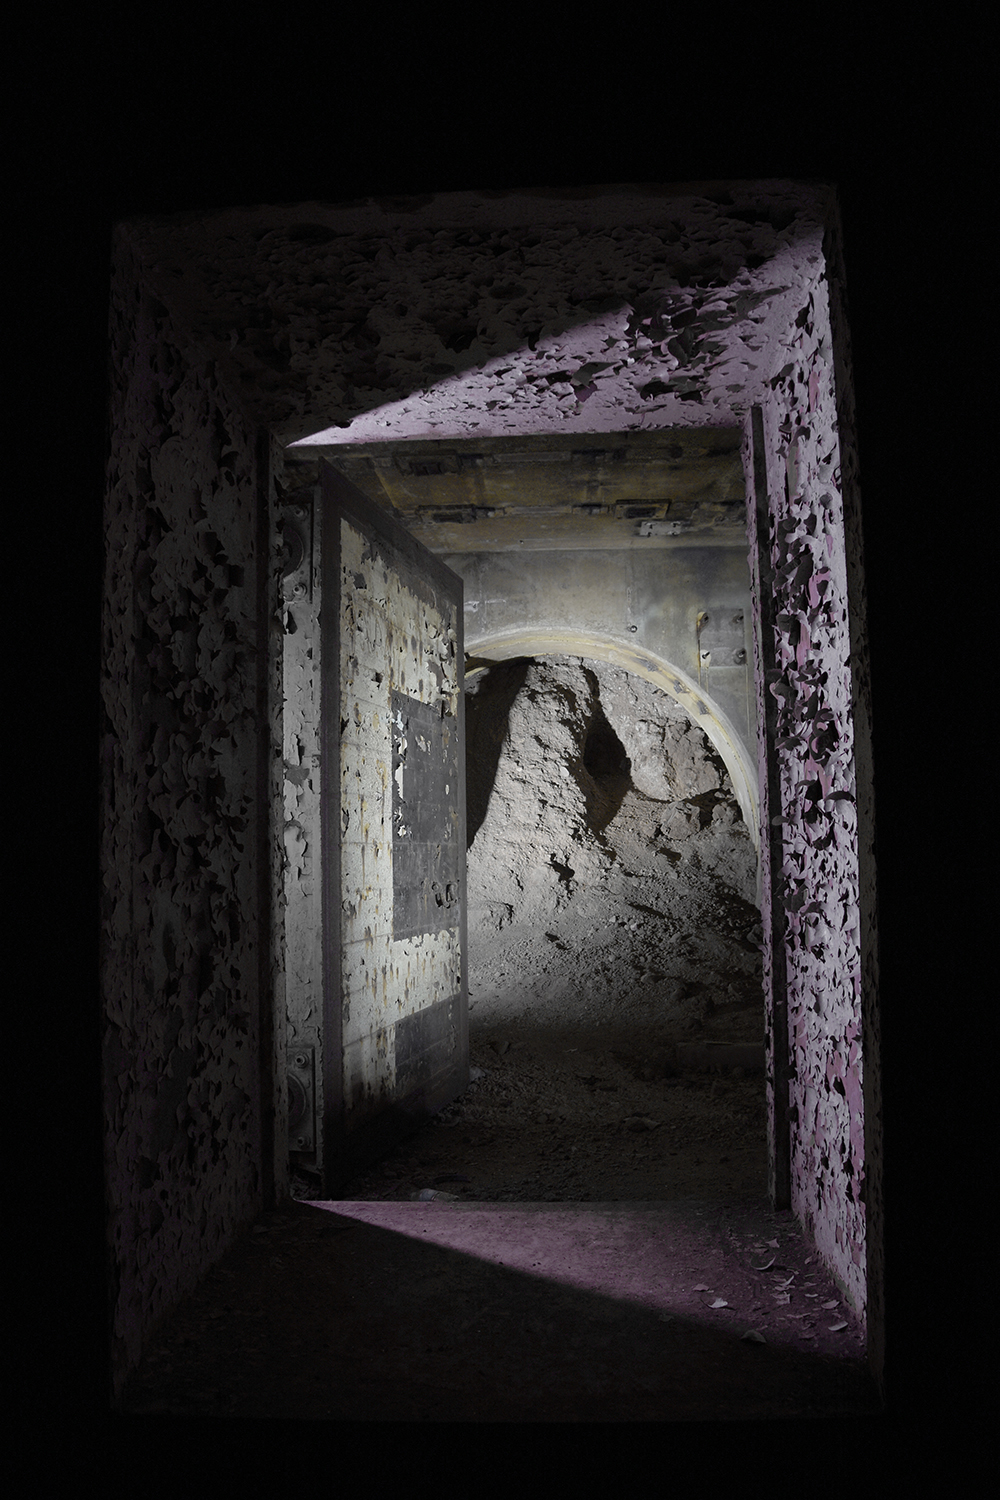 The tunnel leading to the missile silo itself, which was deliberately caved in by the Air Force. © Porter McDonald